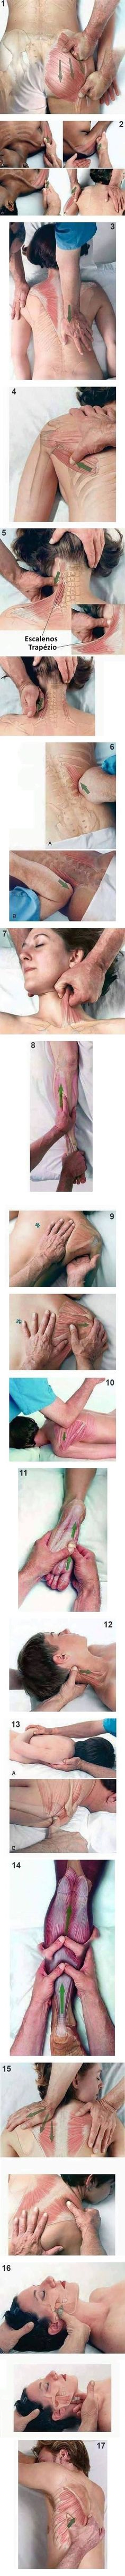 Feel Incredible With These Great Massage Tips. A full body massage is something that can provide numerous benefits for you. This can help both your physical and emotional state. Health Tips, Health And Wellness, Health And Beauty, Health Fitness, Fitness Diet, Massage Tips, Massage Therapy, Massage Body, Fitness Workouts